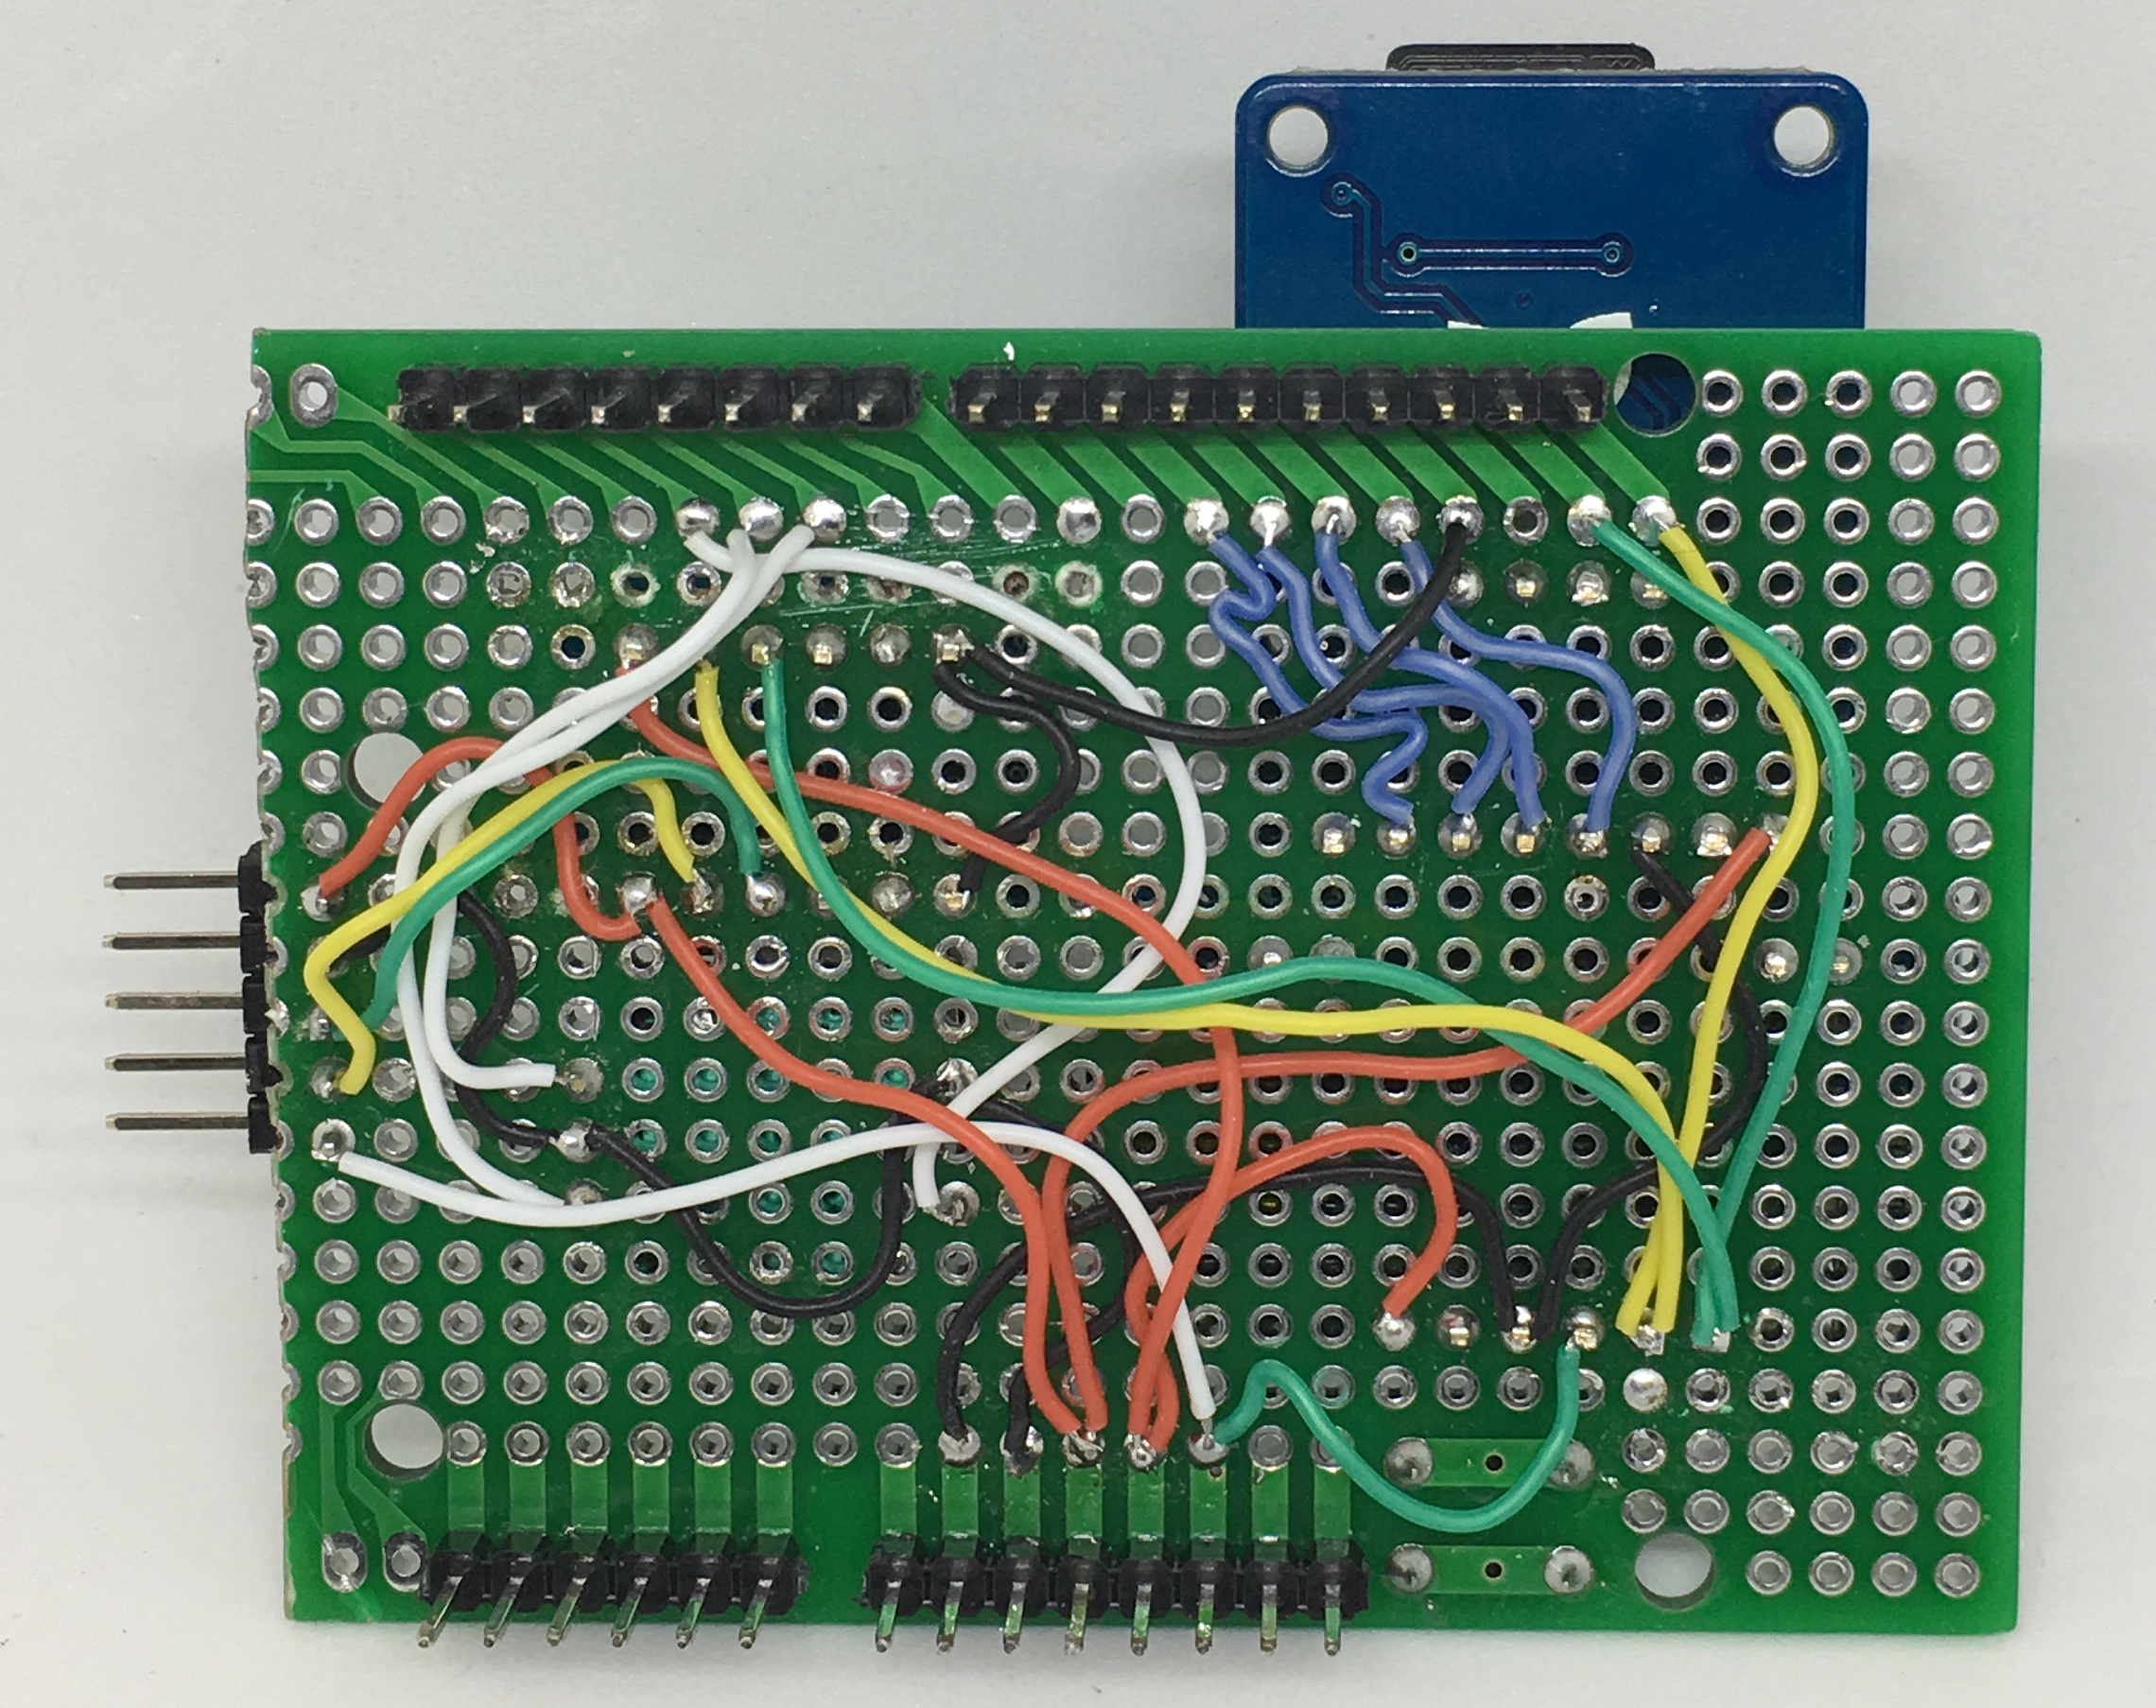 components_Controller_back.jpg